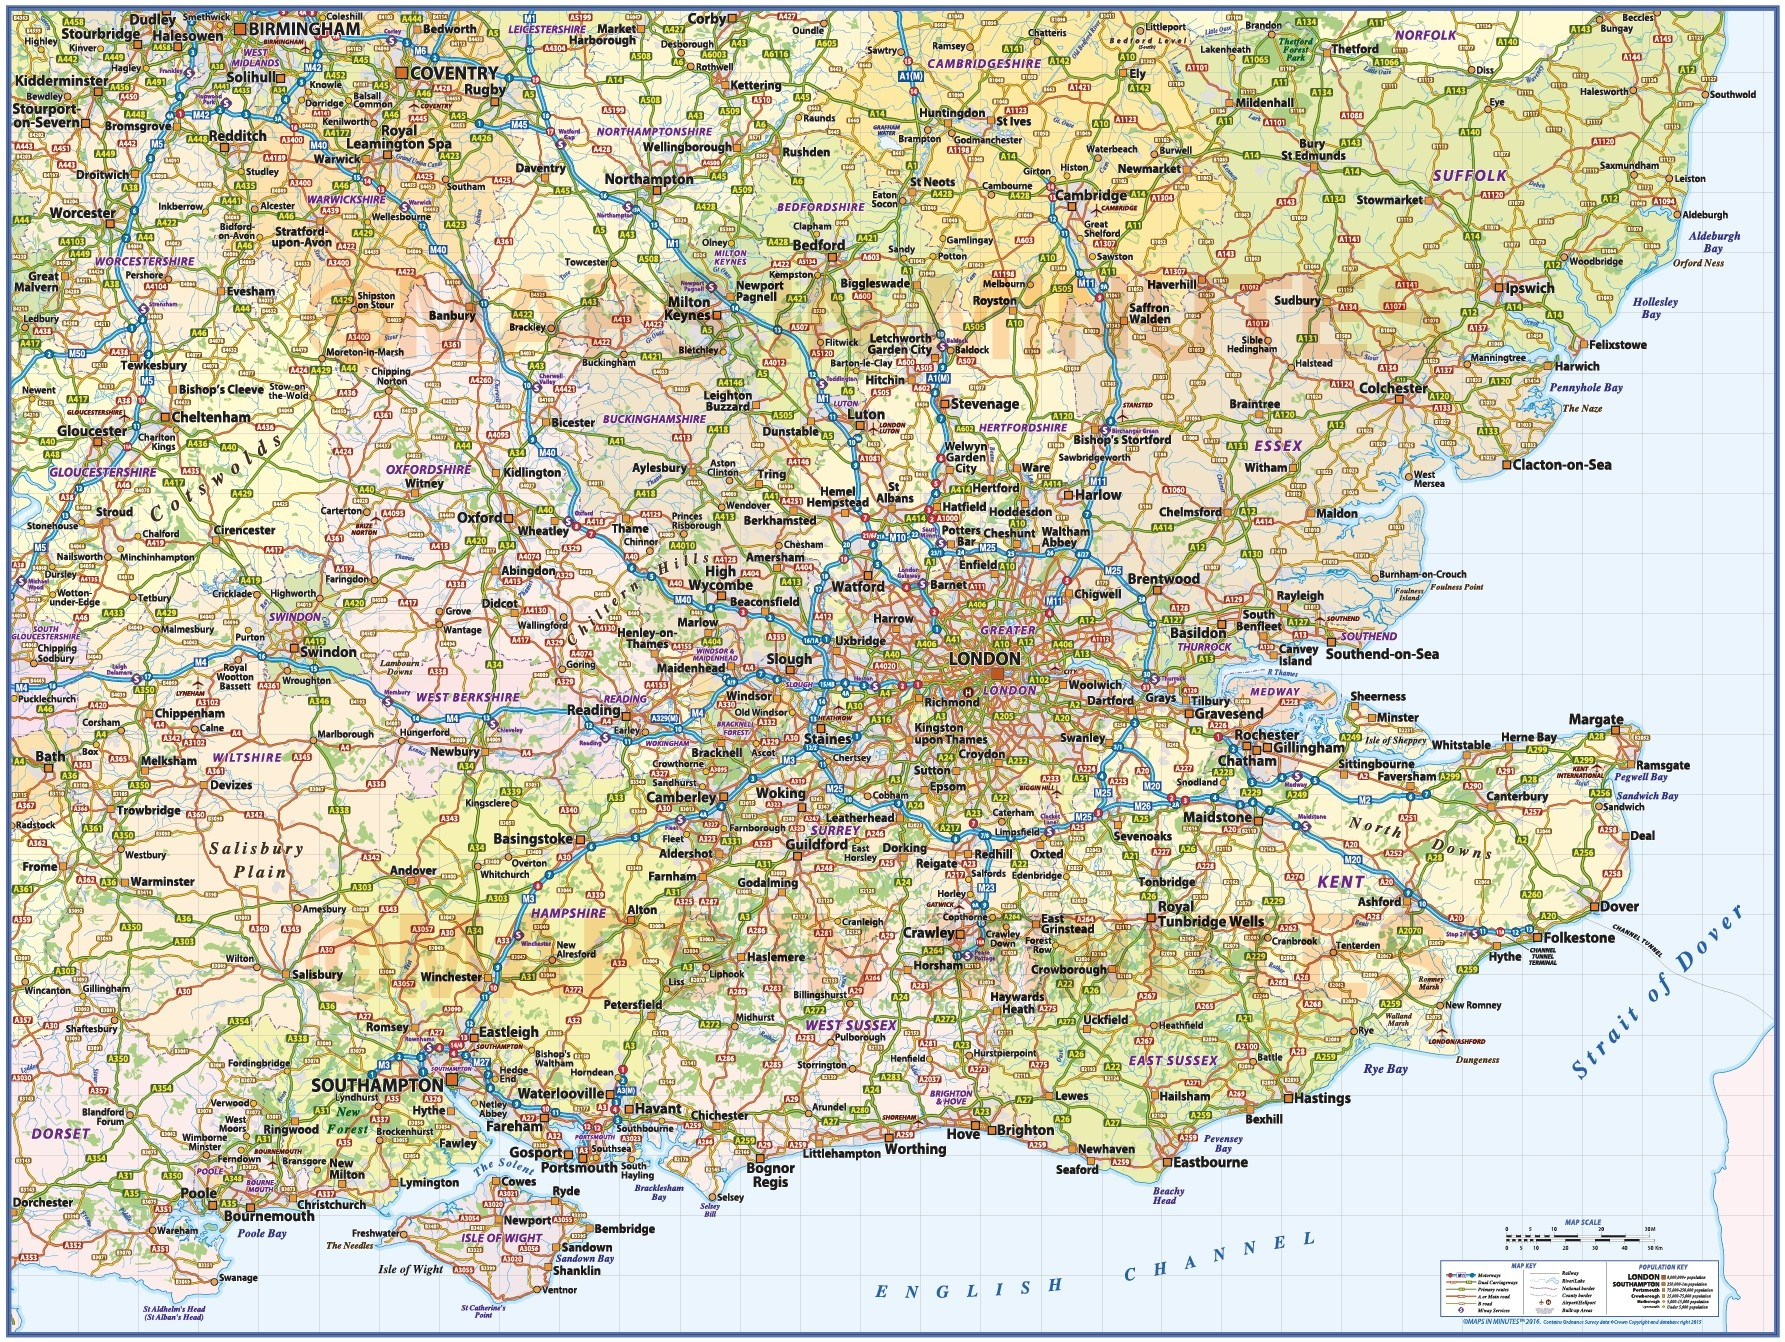 Map Of South England.South East England 1st Level County Wall Map With Roads And